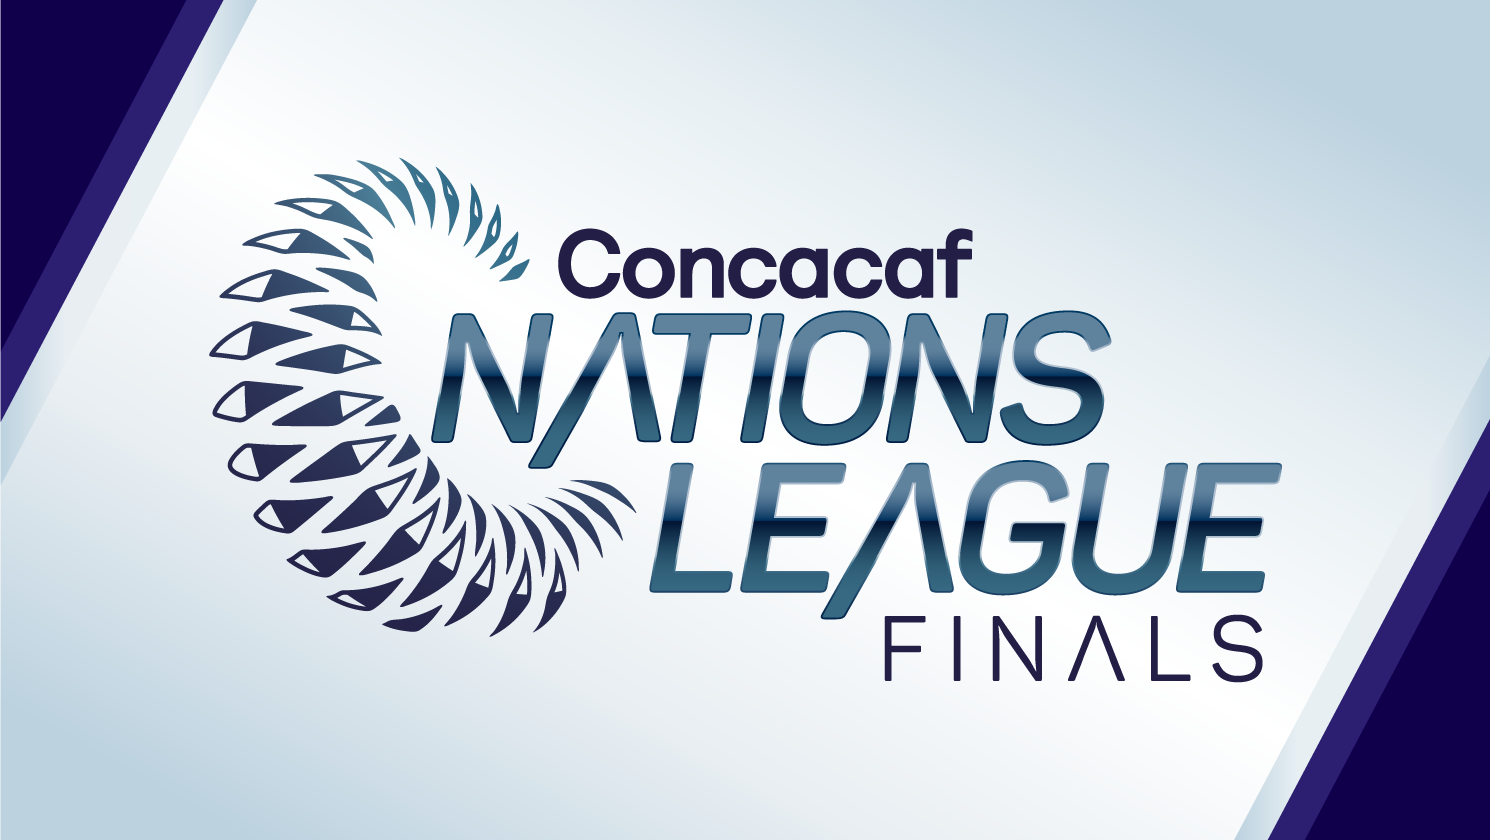 Texas to Host First-Ever Concacaf Nations League Finals in June 2020